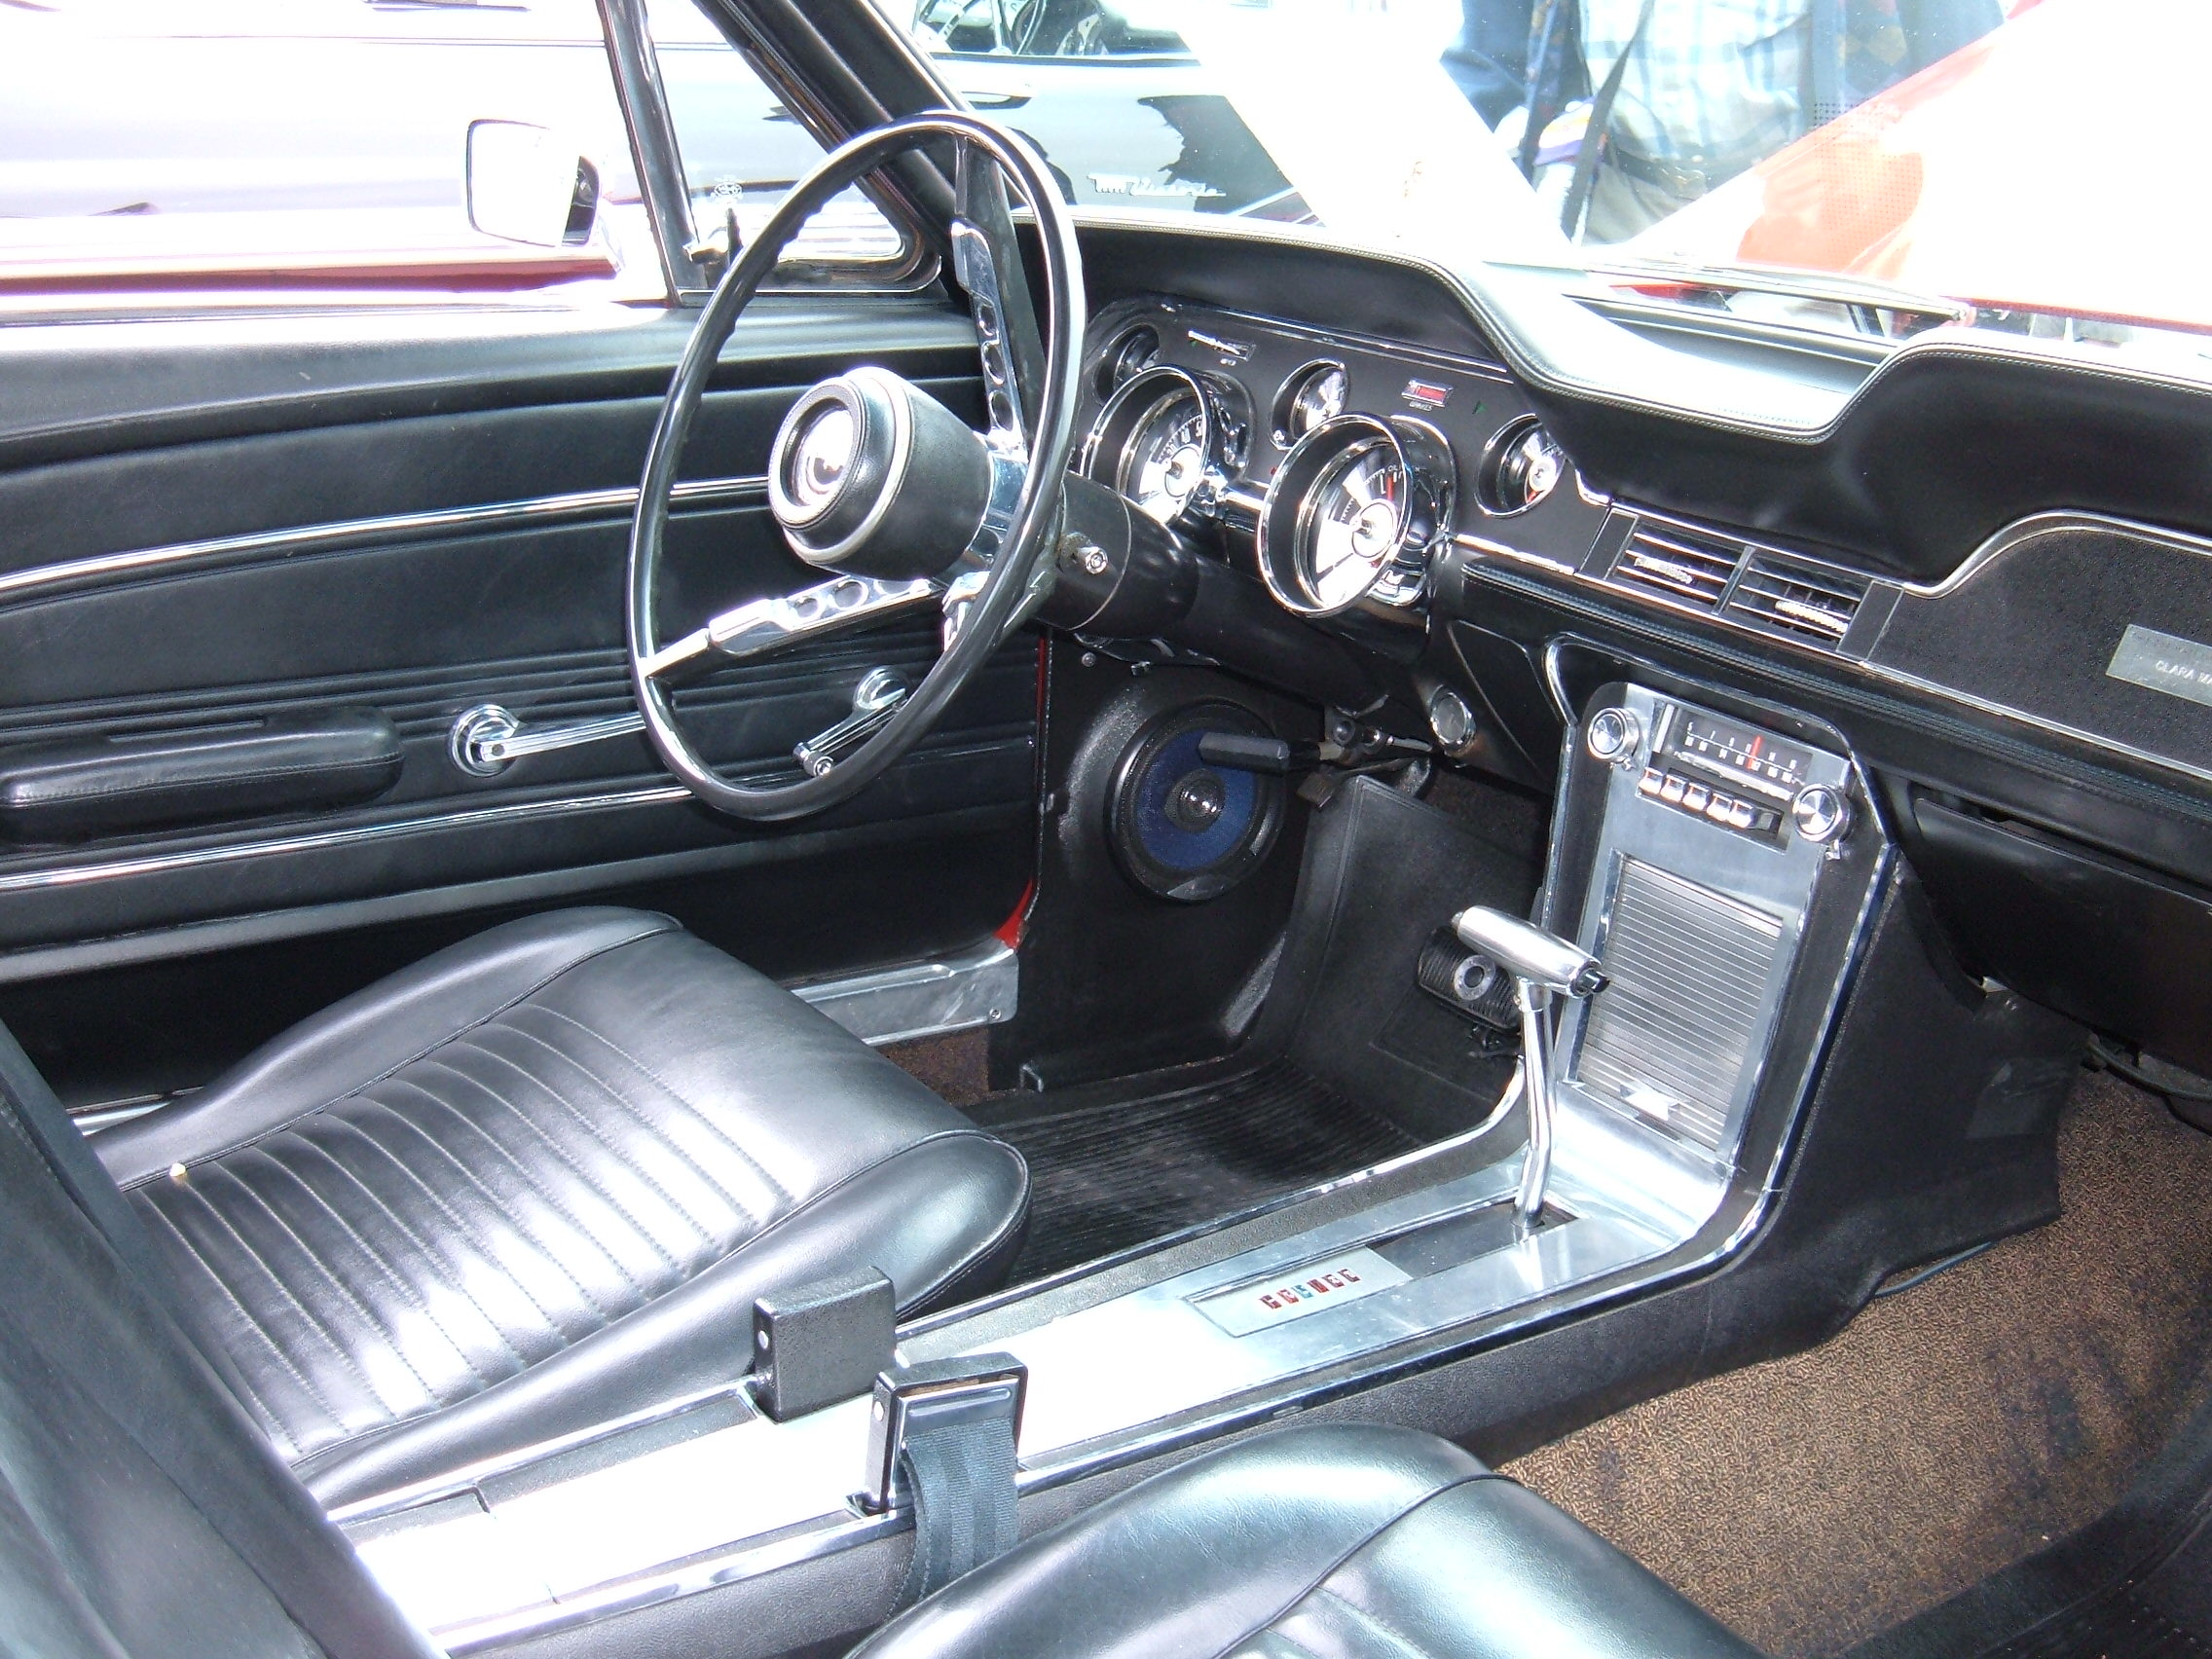 file1967 red ford mustang coupe interiorjpg